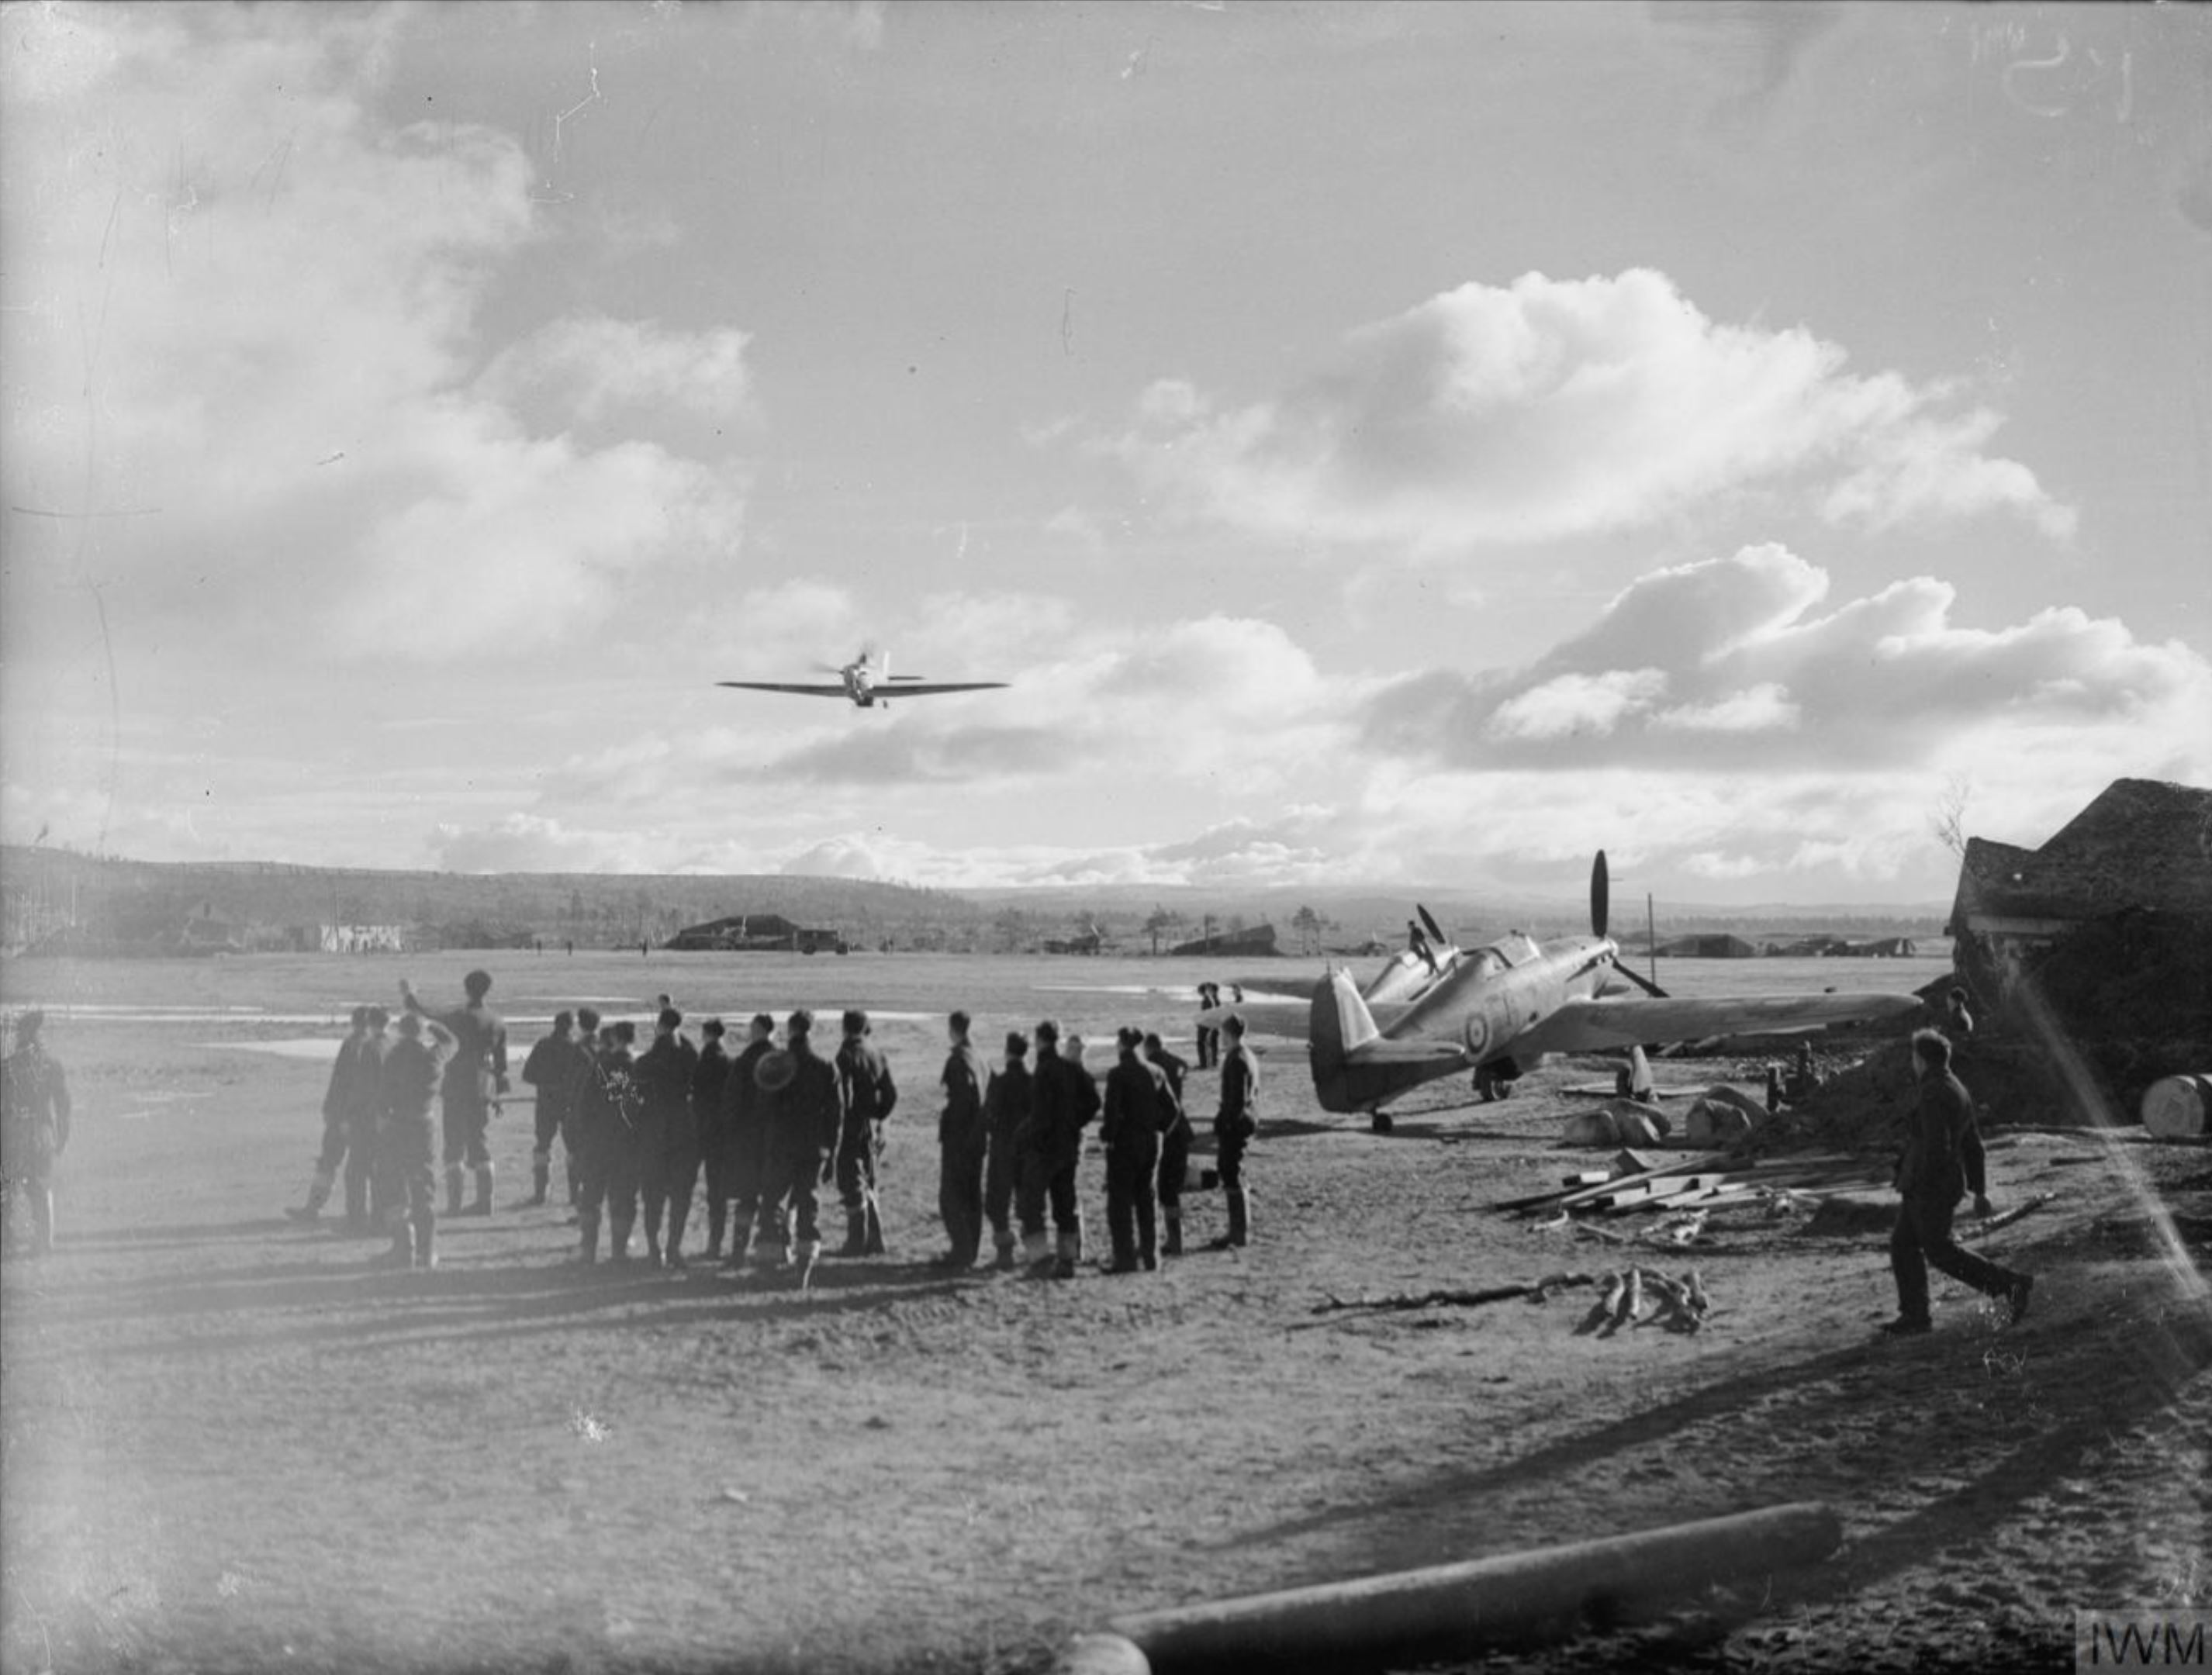 Aircrew from RAF 151 Wing watch a low level pass Vaenga USSR 1941 IWM CR59